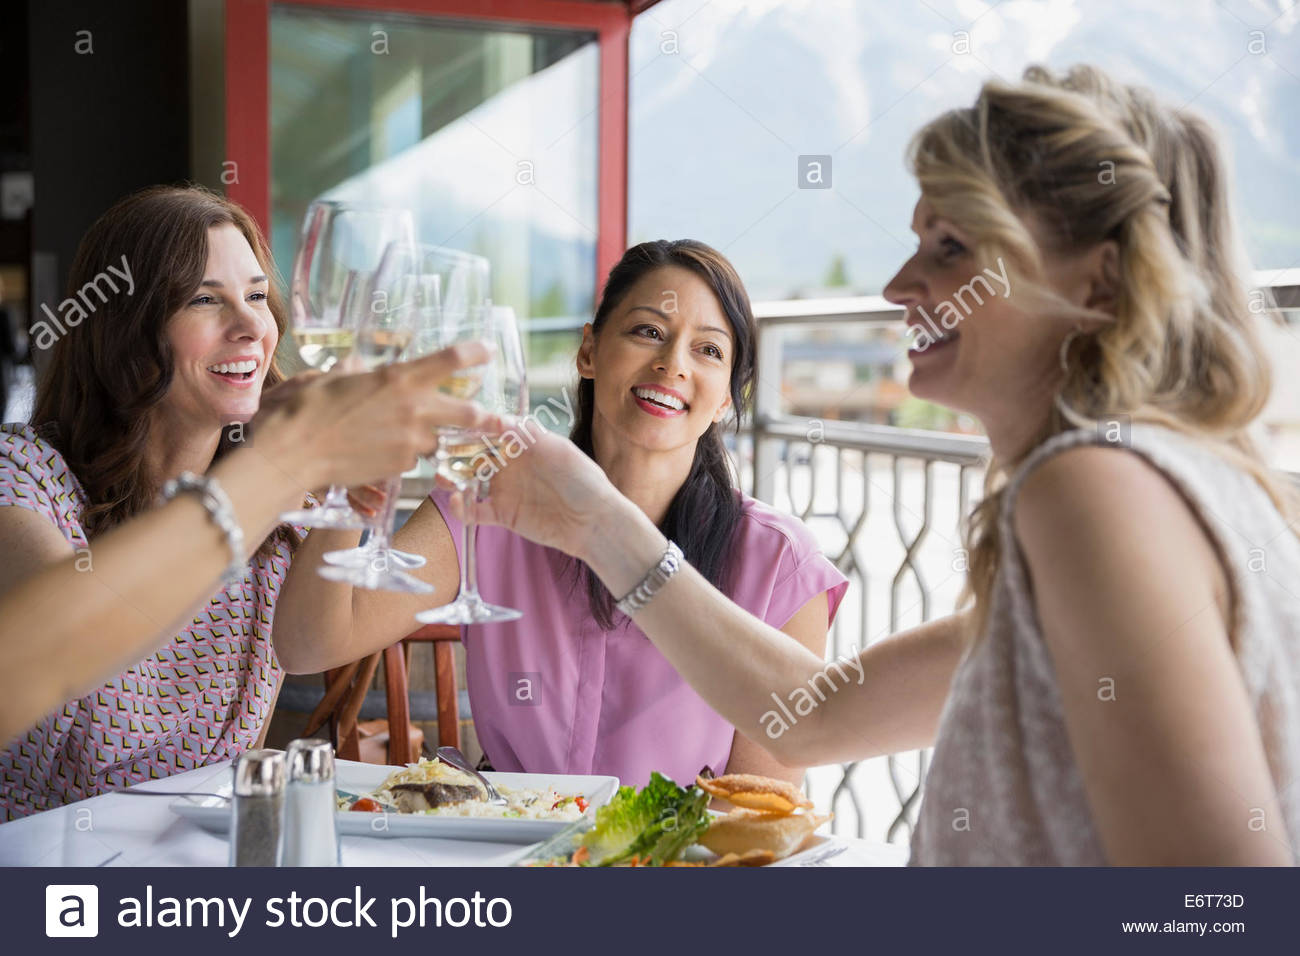 Women toasting each other in restaurant Photo Stock